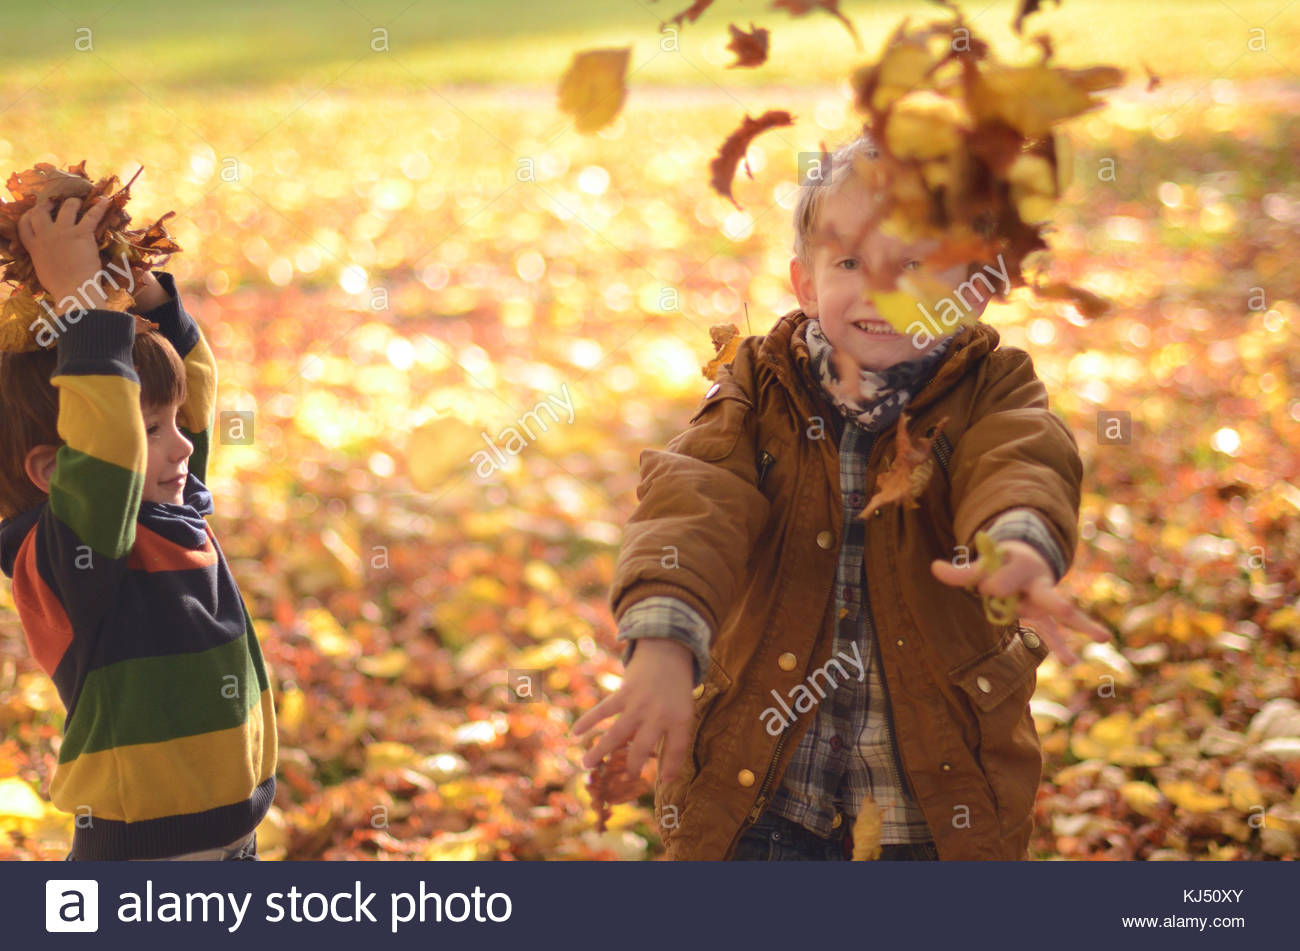 Children playing with leafs - Stock Image